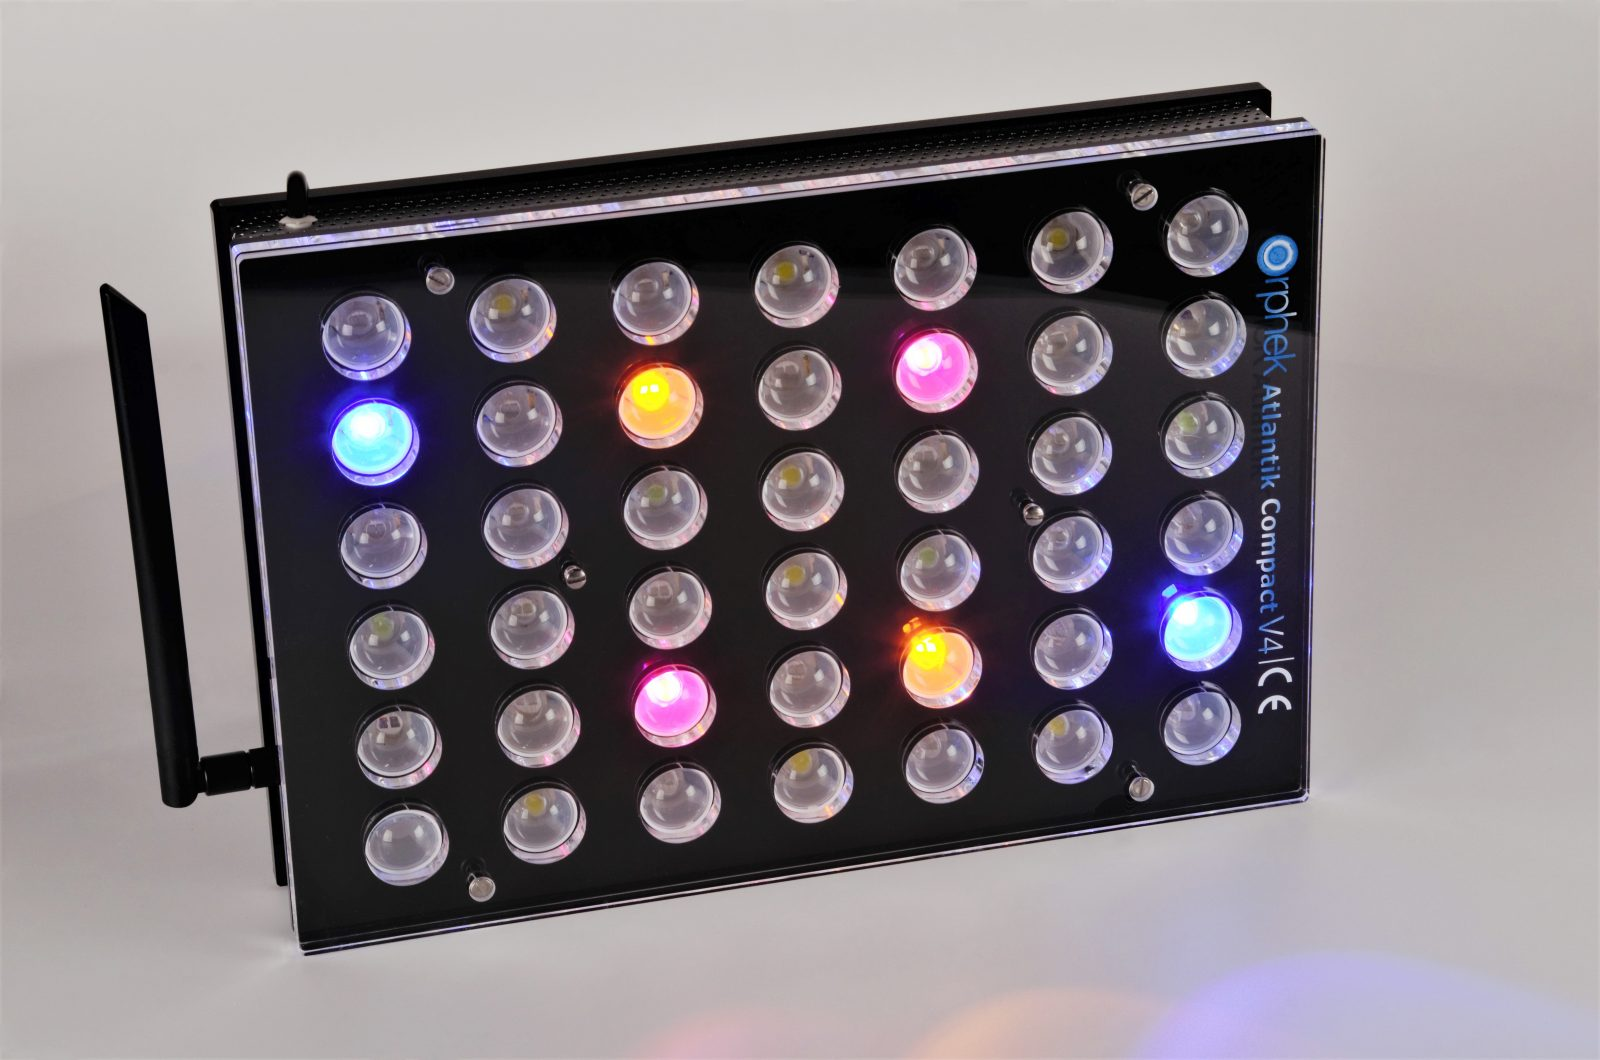 Orphek-Aquarium-LED-Beleuchtung-Atlantik -Compact-V4-light -on -channel 4